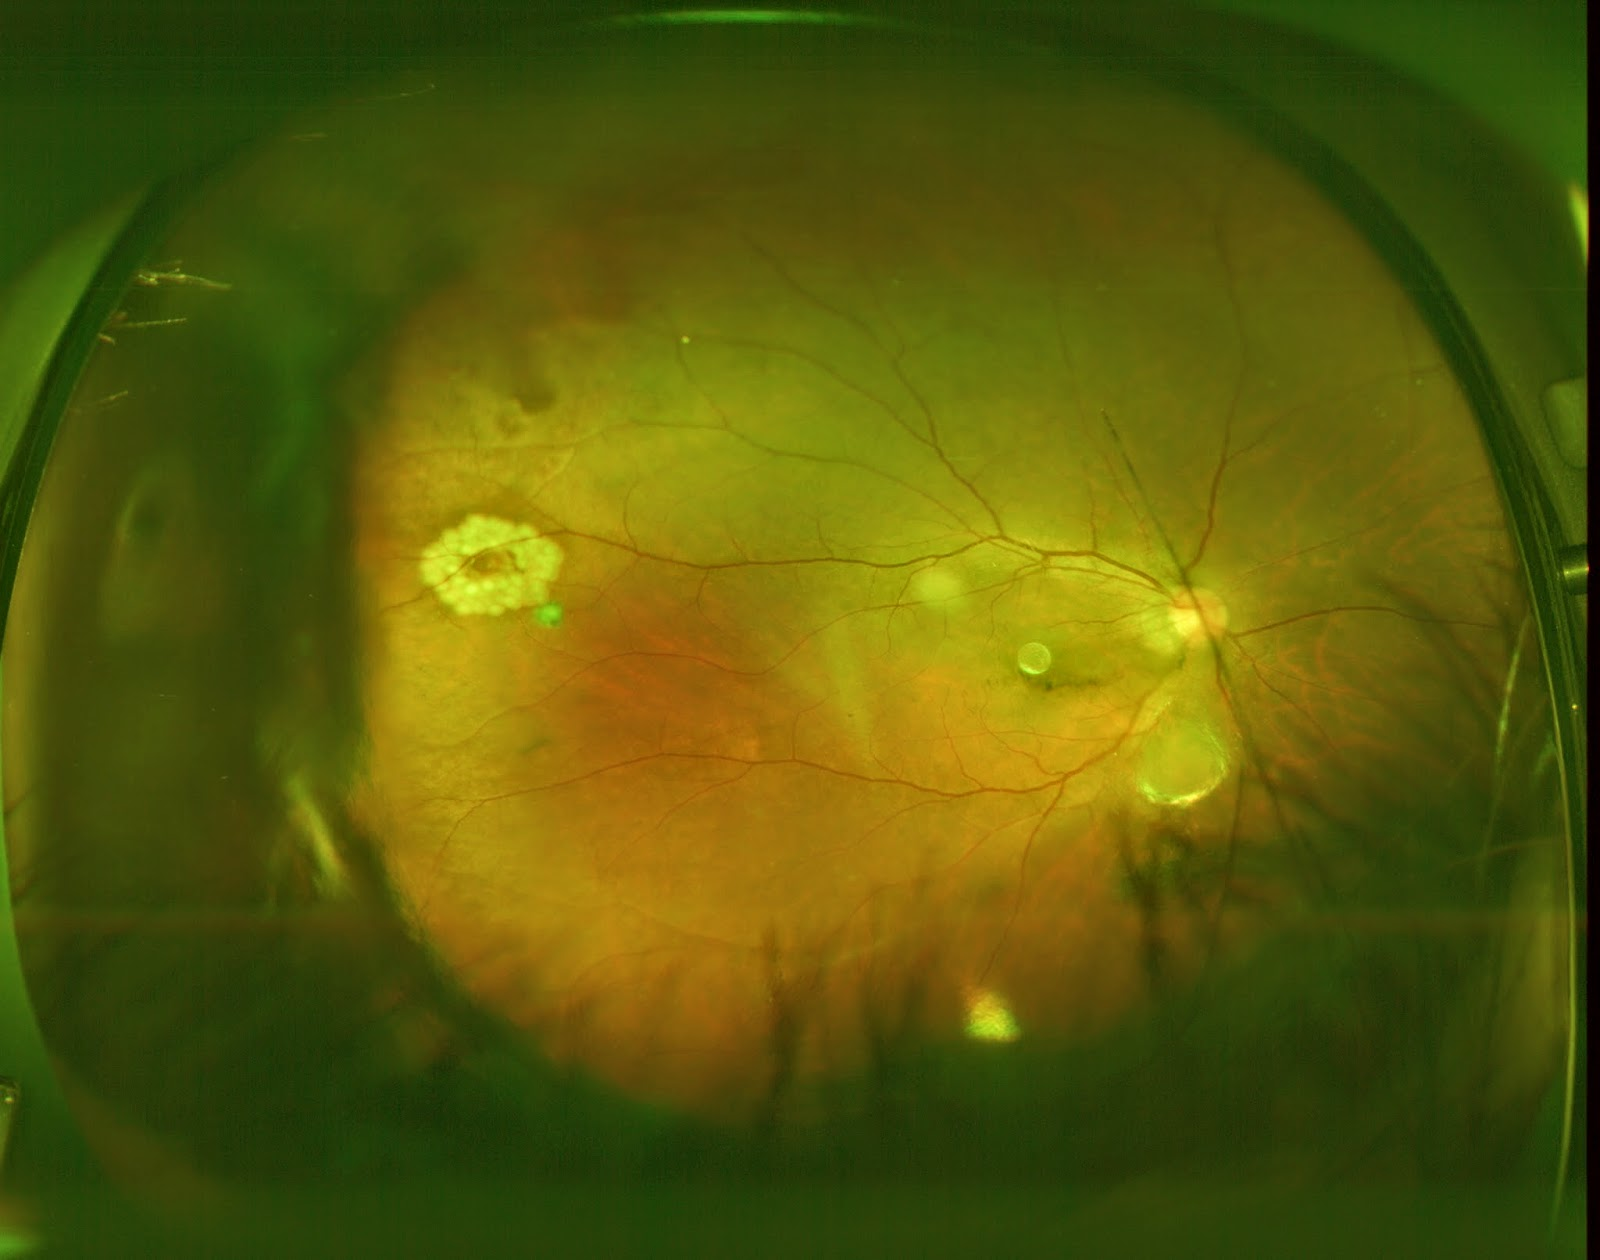 A retinal hole after laser treatment